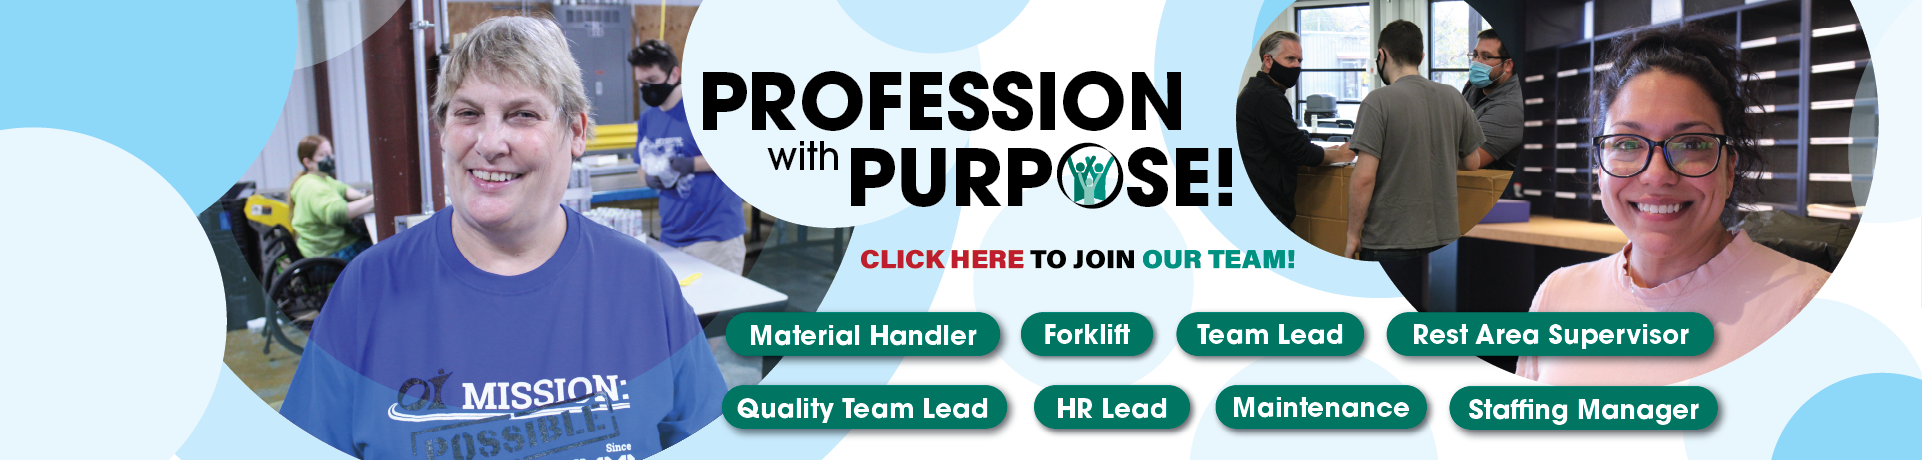 A_Profession_Frontpage_Banner_10-12